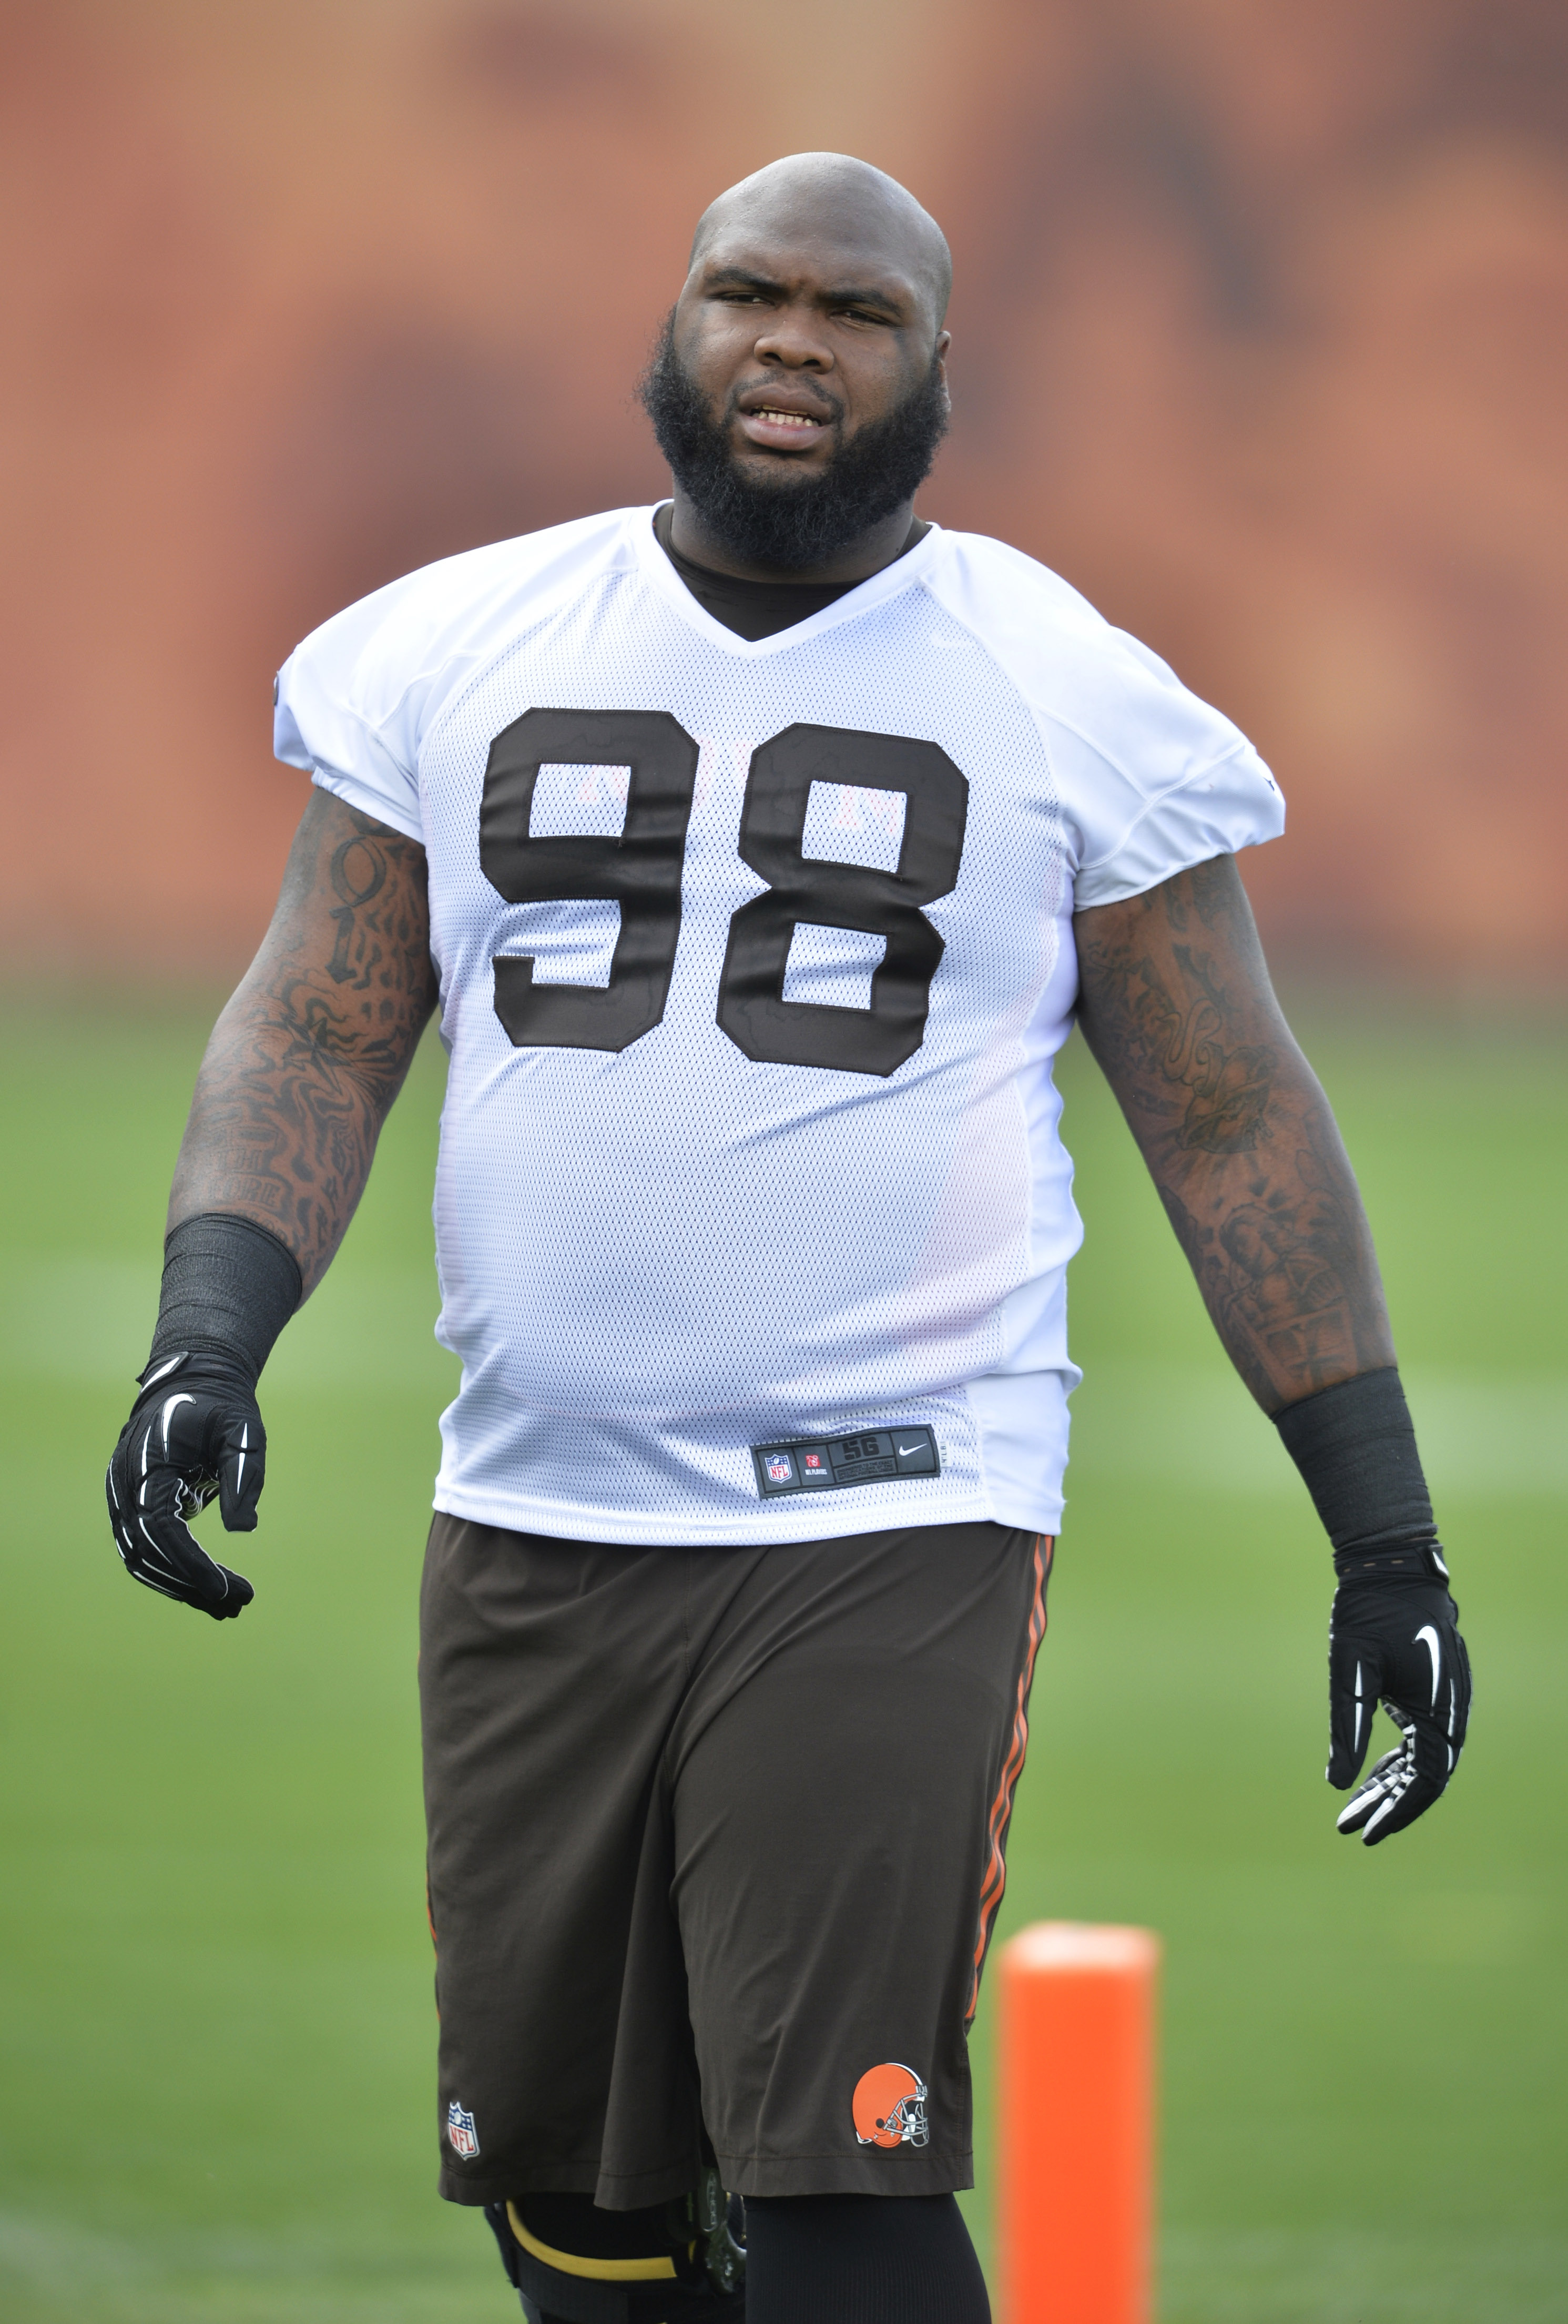 FILE - In this Tuesday, May 26, 2015 file photo, Cleveland Browns defensive lineman Phil Taylor (98) participates in an NFL organized training activity in Berea, Ohio. The Browns have released defensive tackle Phil Taylor, a former first-round pick, Tuesd